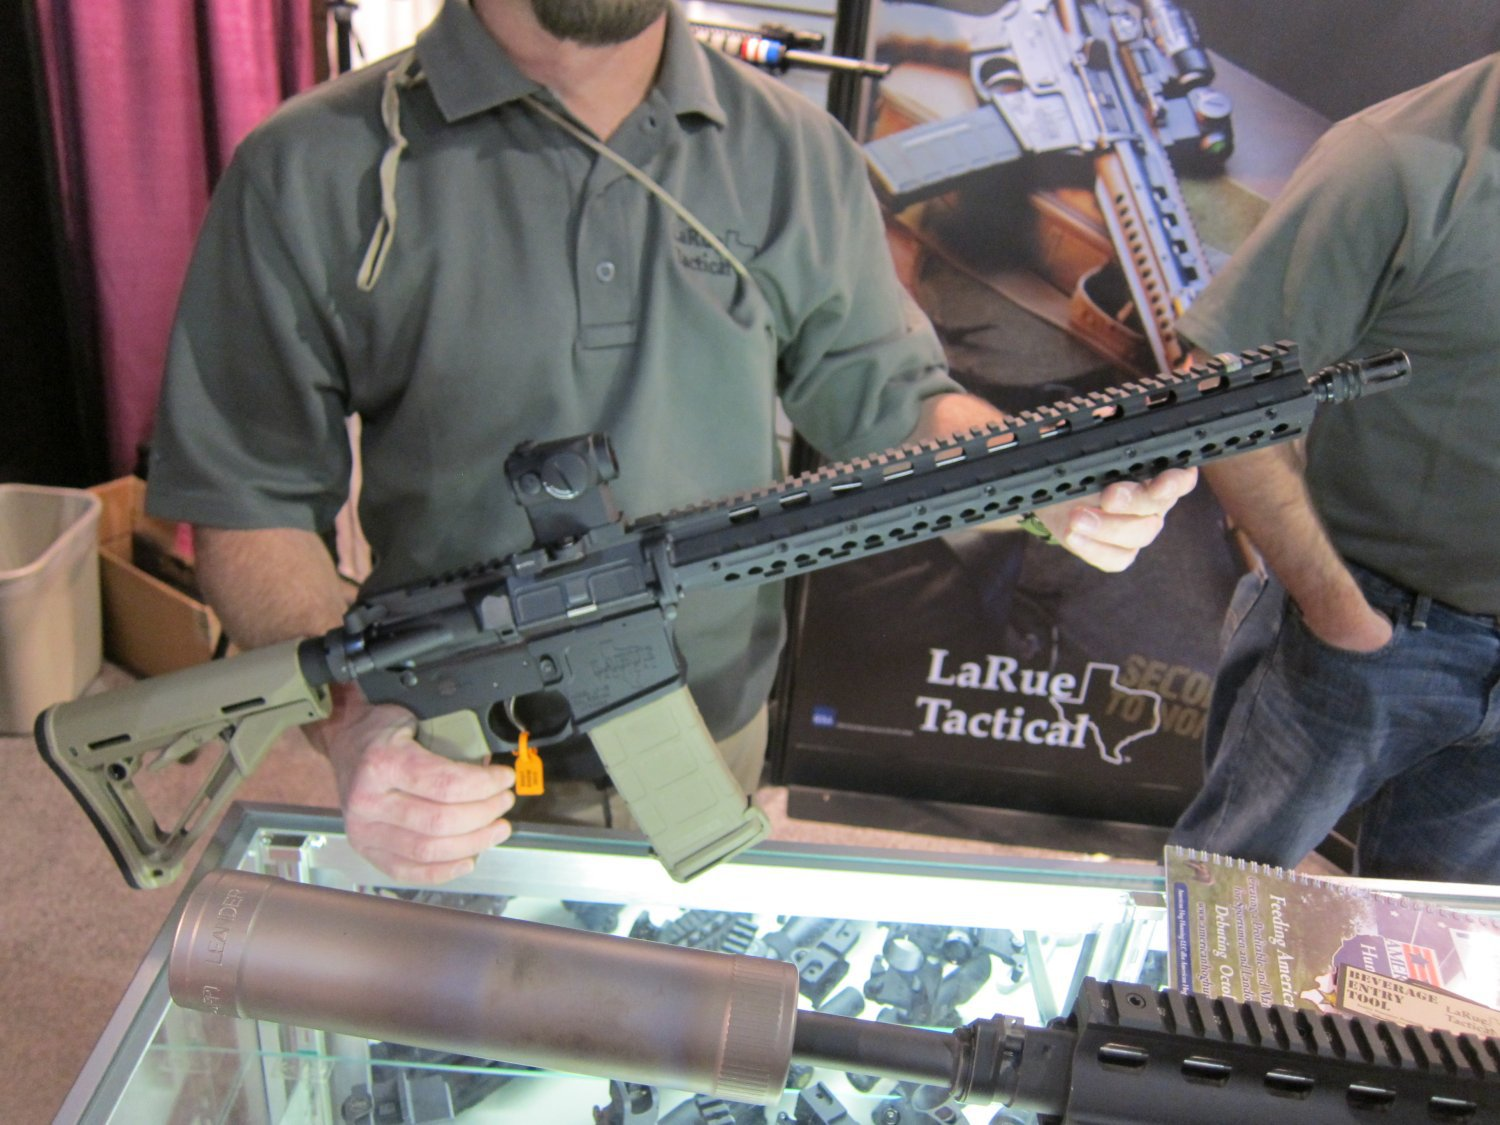 LaRue Tactical OBR 5.56 PREDATAR Series Tactical AR Carbine at SHOT Show 2011 1 <!  :en  >LaRue Tactical PredatAR Series Lightweight OBR 5.56 and OBR 7.62 Tactical AR Carbines Debut at SHOT Show 2011 (Video!)<!  :  >